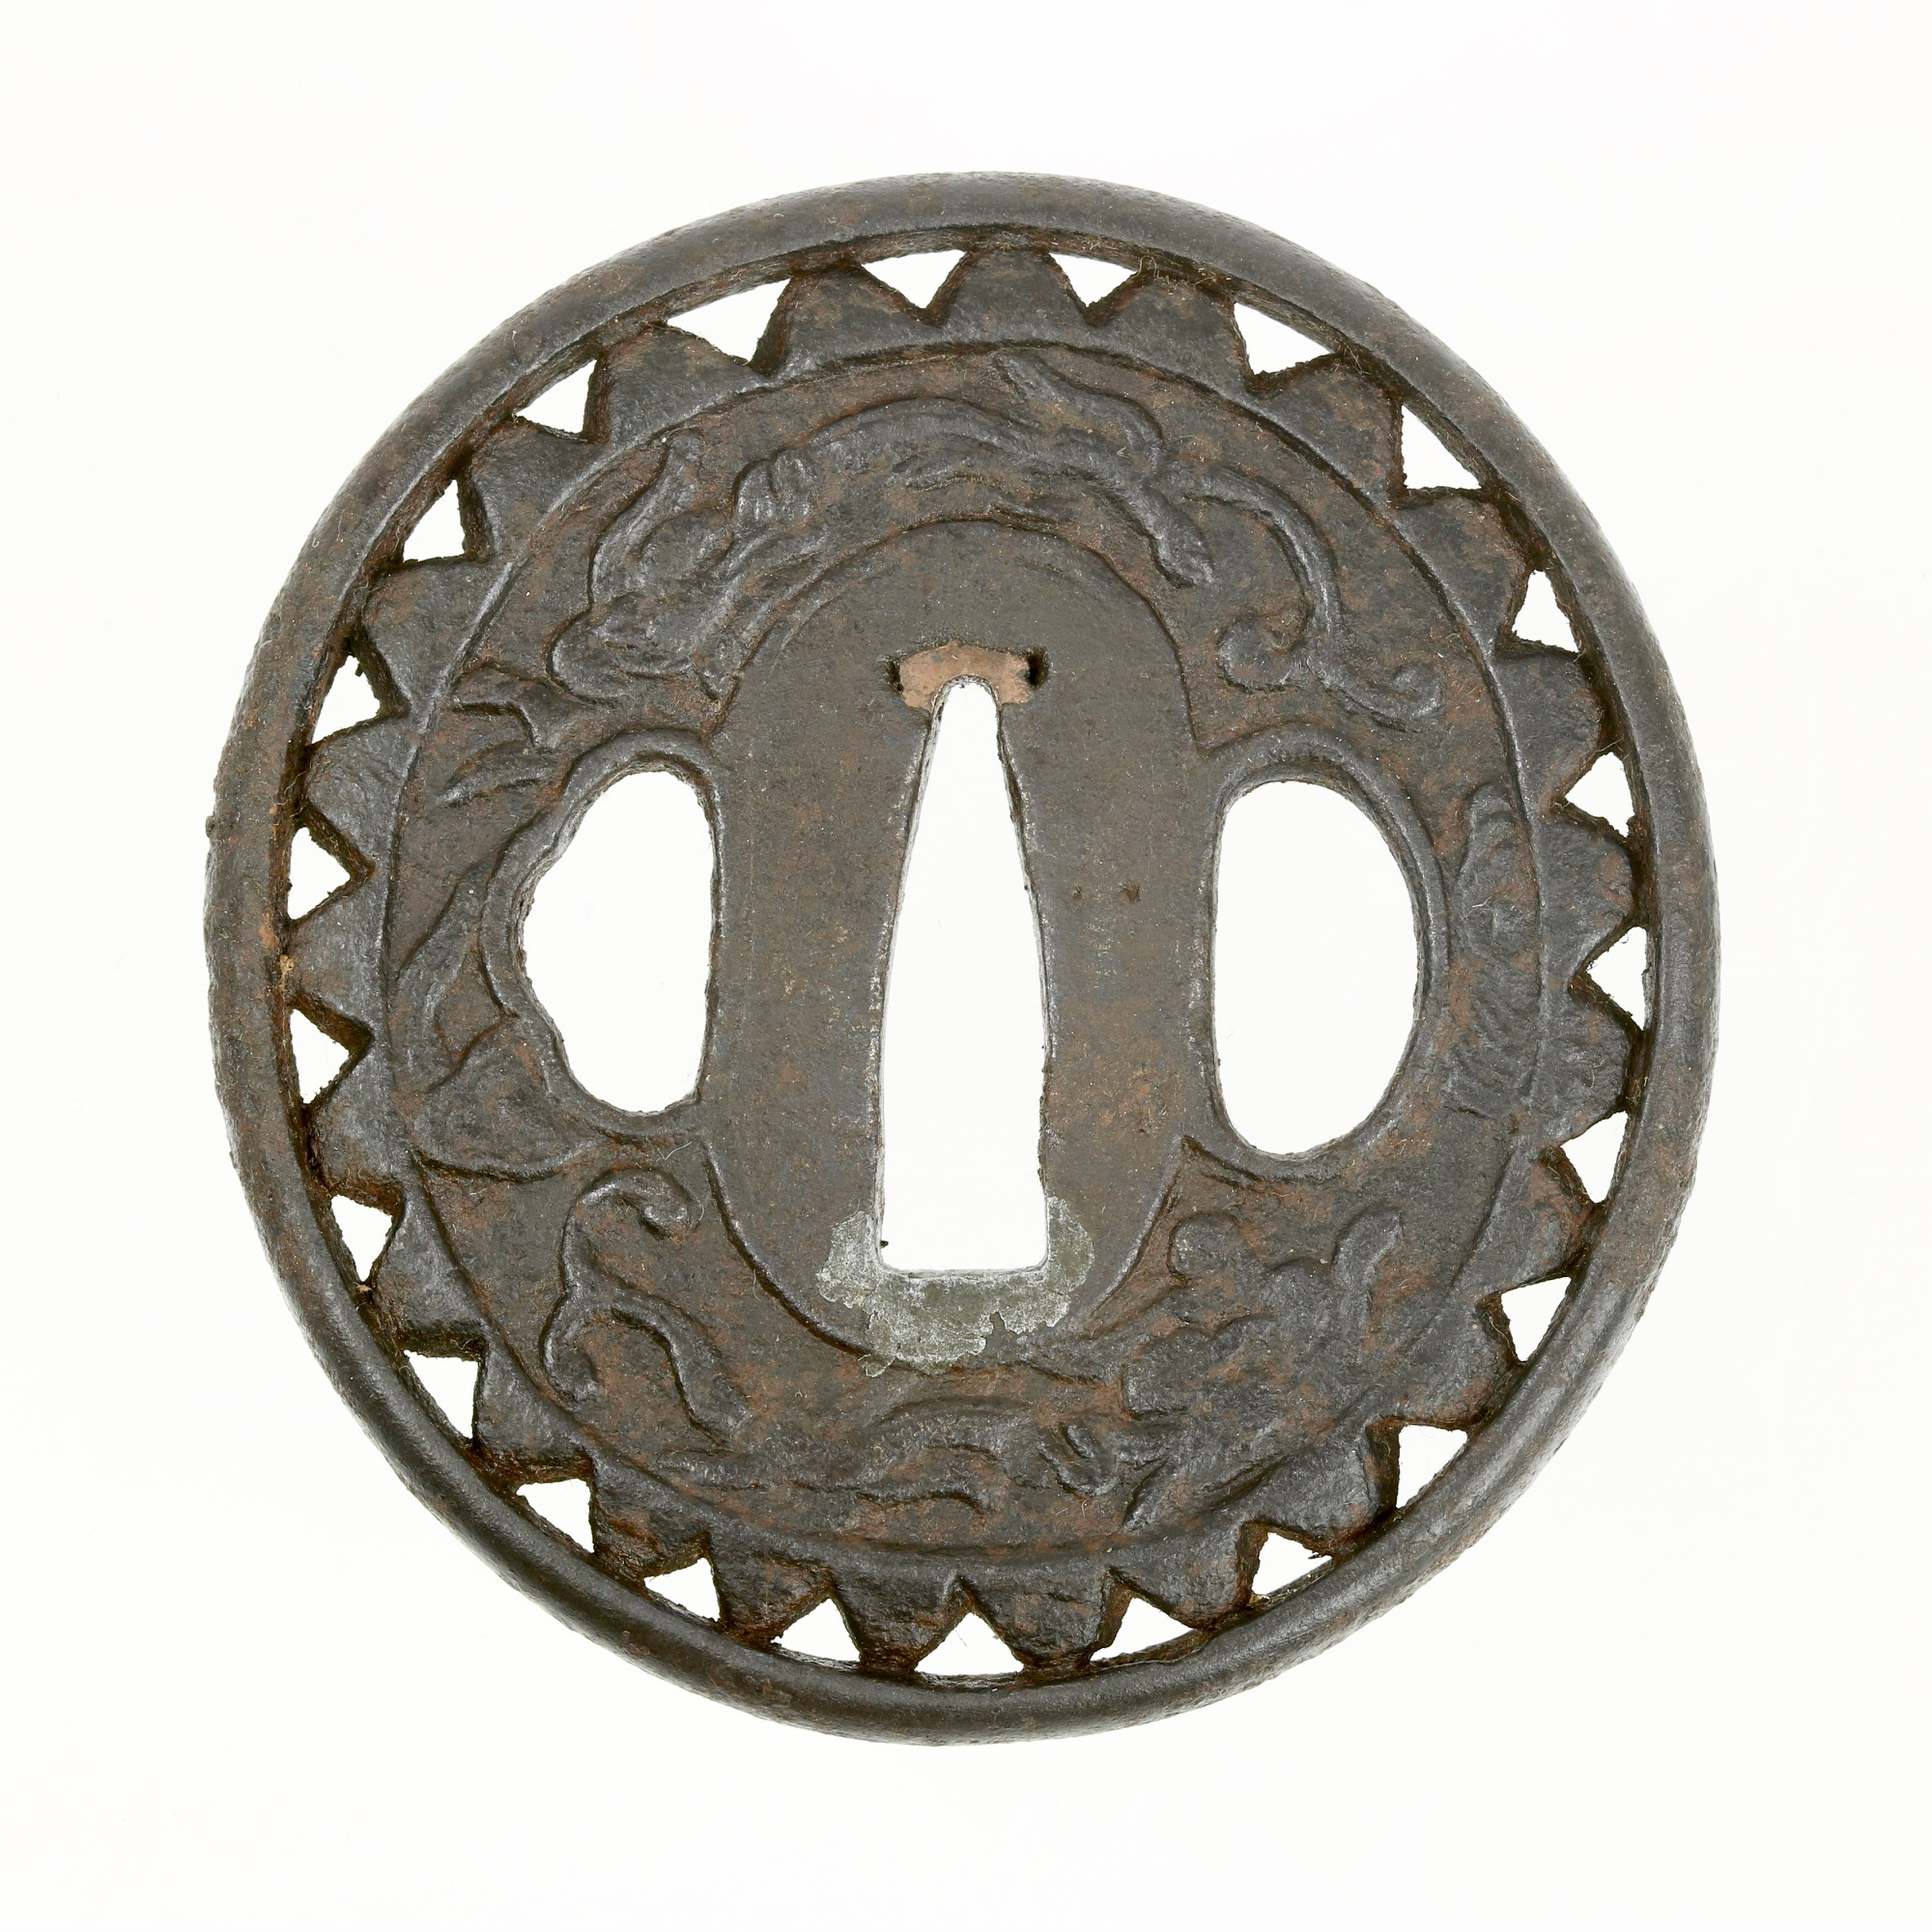 An Asian export sword guard intended for the Japanese market